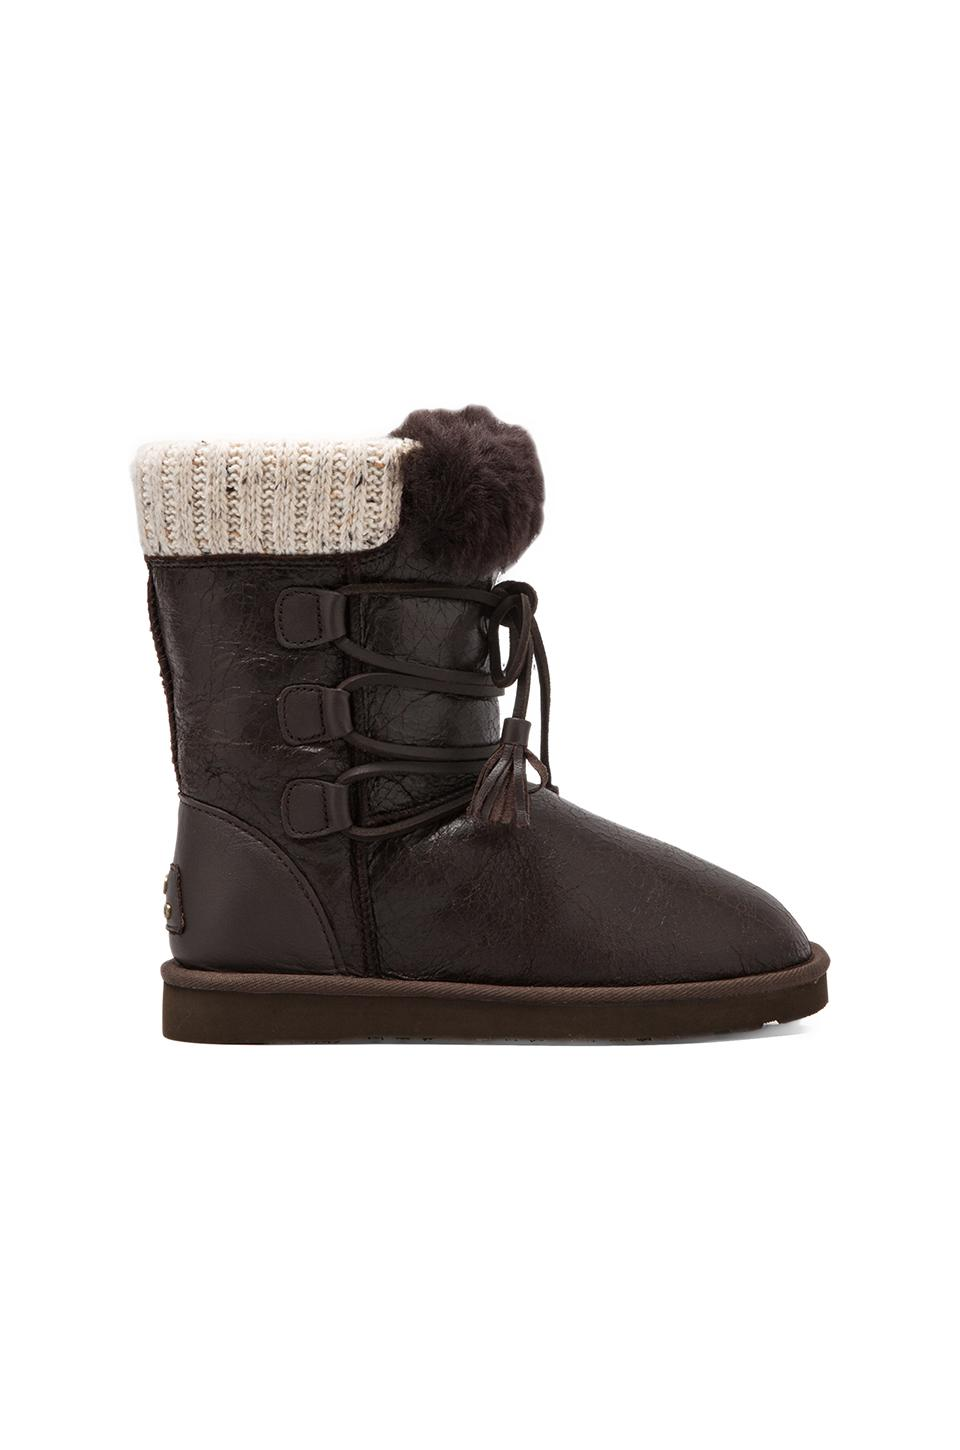 Koolaburra Brinley II Boot with Twinface Sheepskin in Cappuccino Distressed